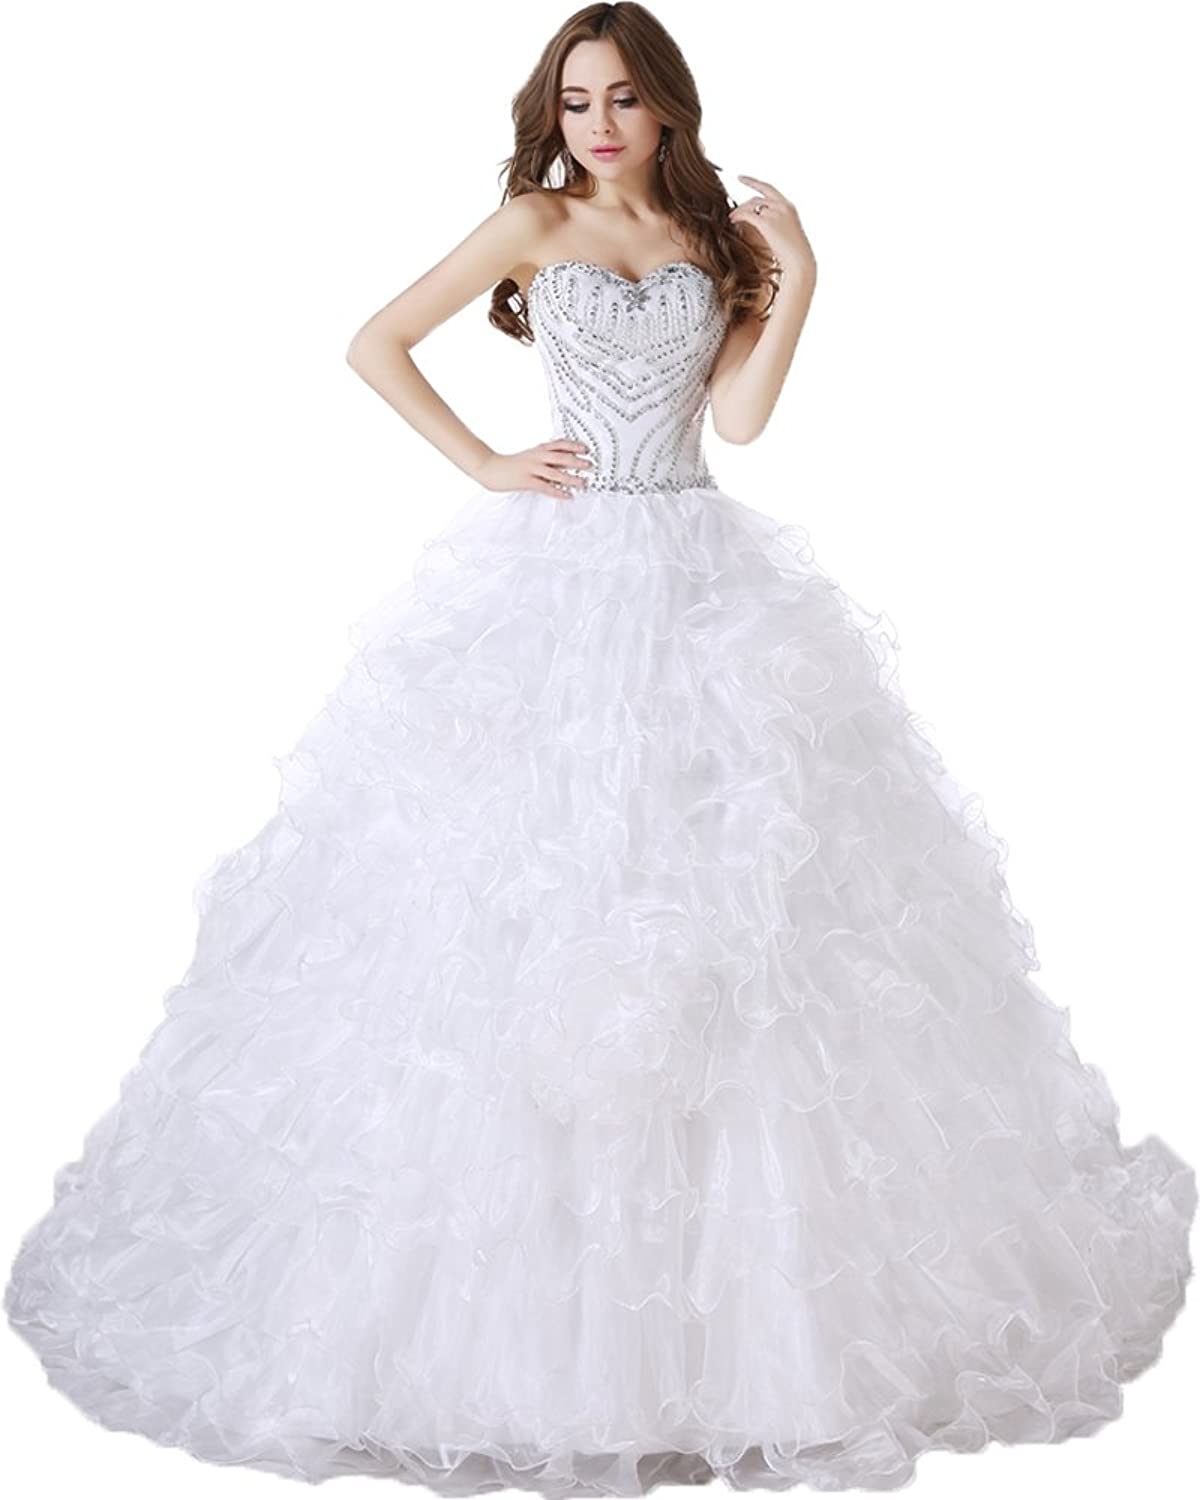 Heloise Women's Wedding Dresses Organza Beadings&Crystals Strapless Lace up Corset Sleeveless Ball Gown Bridal Dress